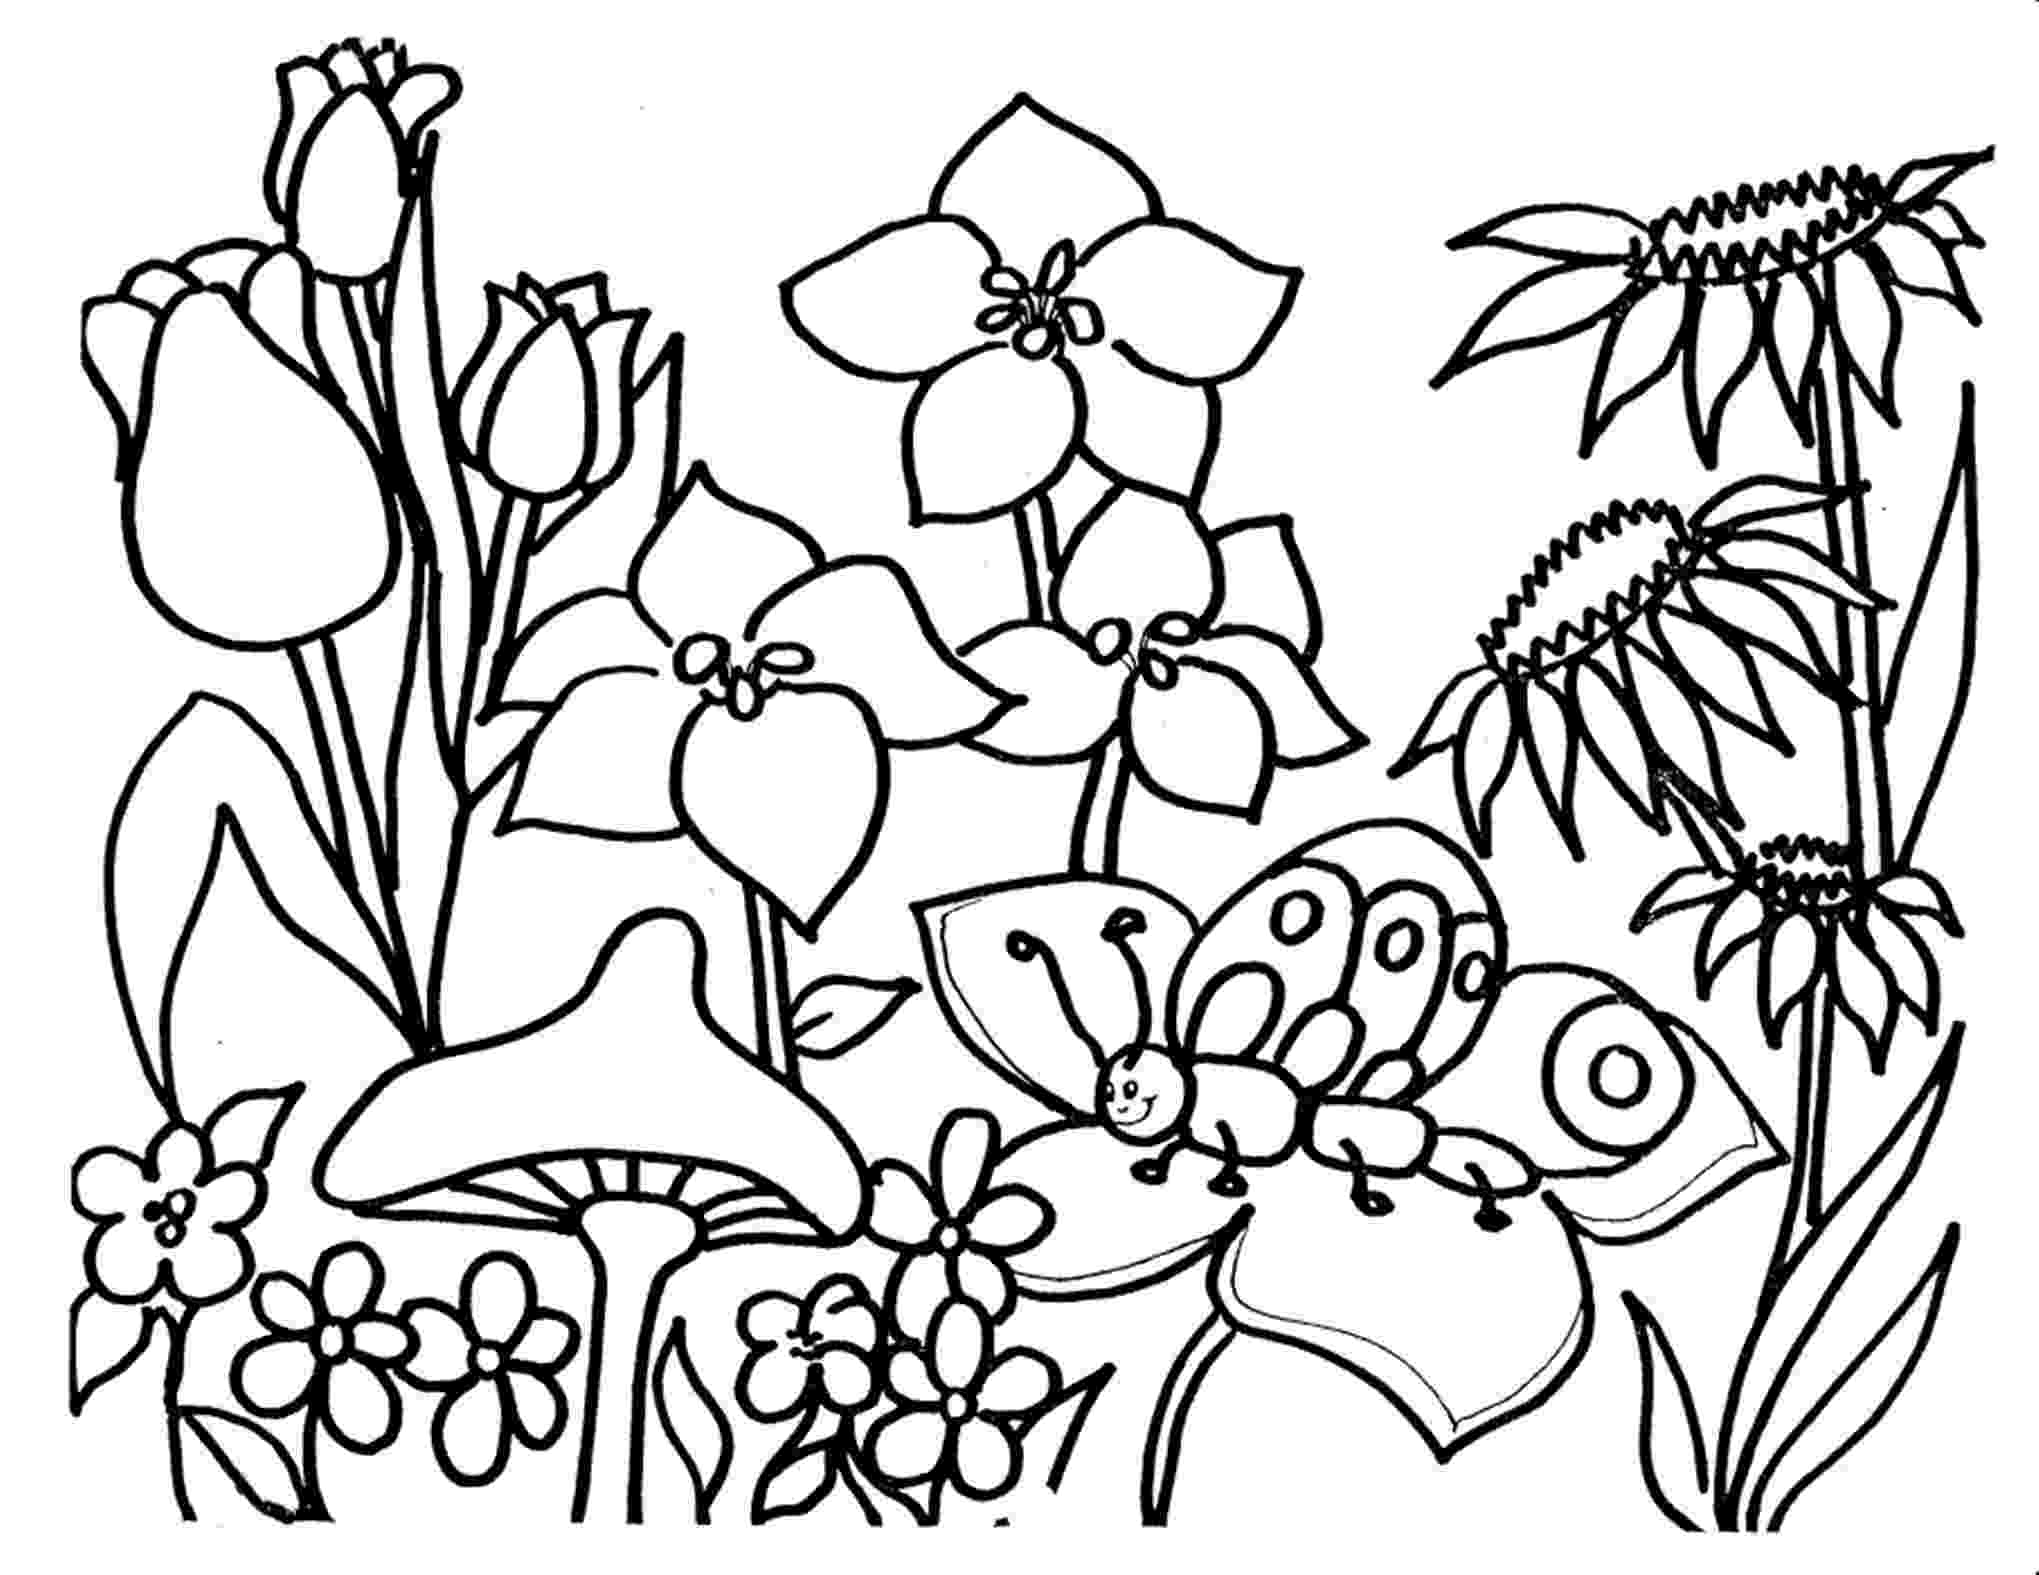 colouring pictures of plants plant coloring pages to download and print for free pictures plants colouring of